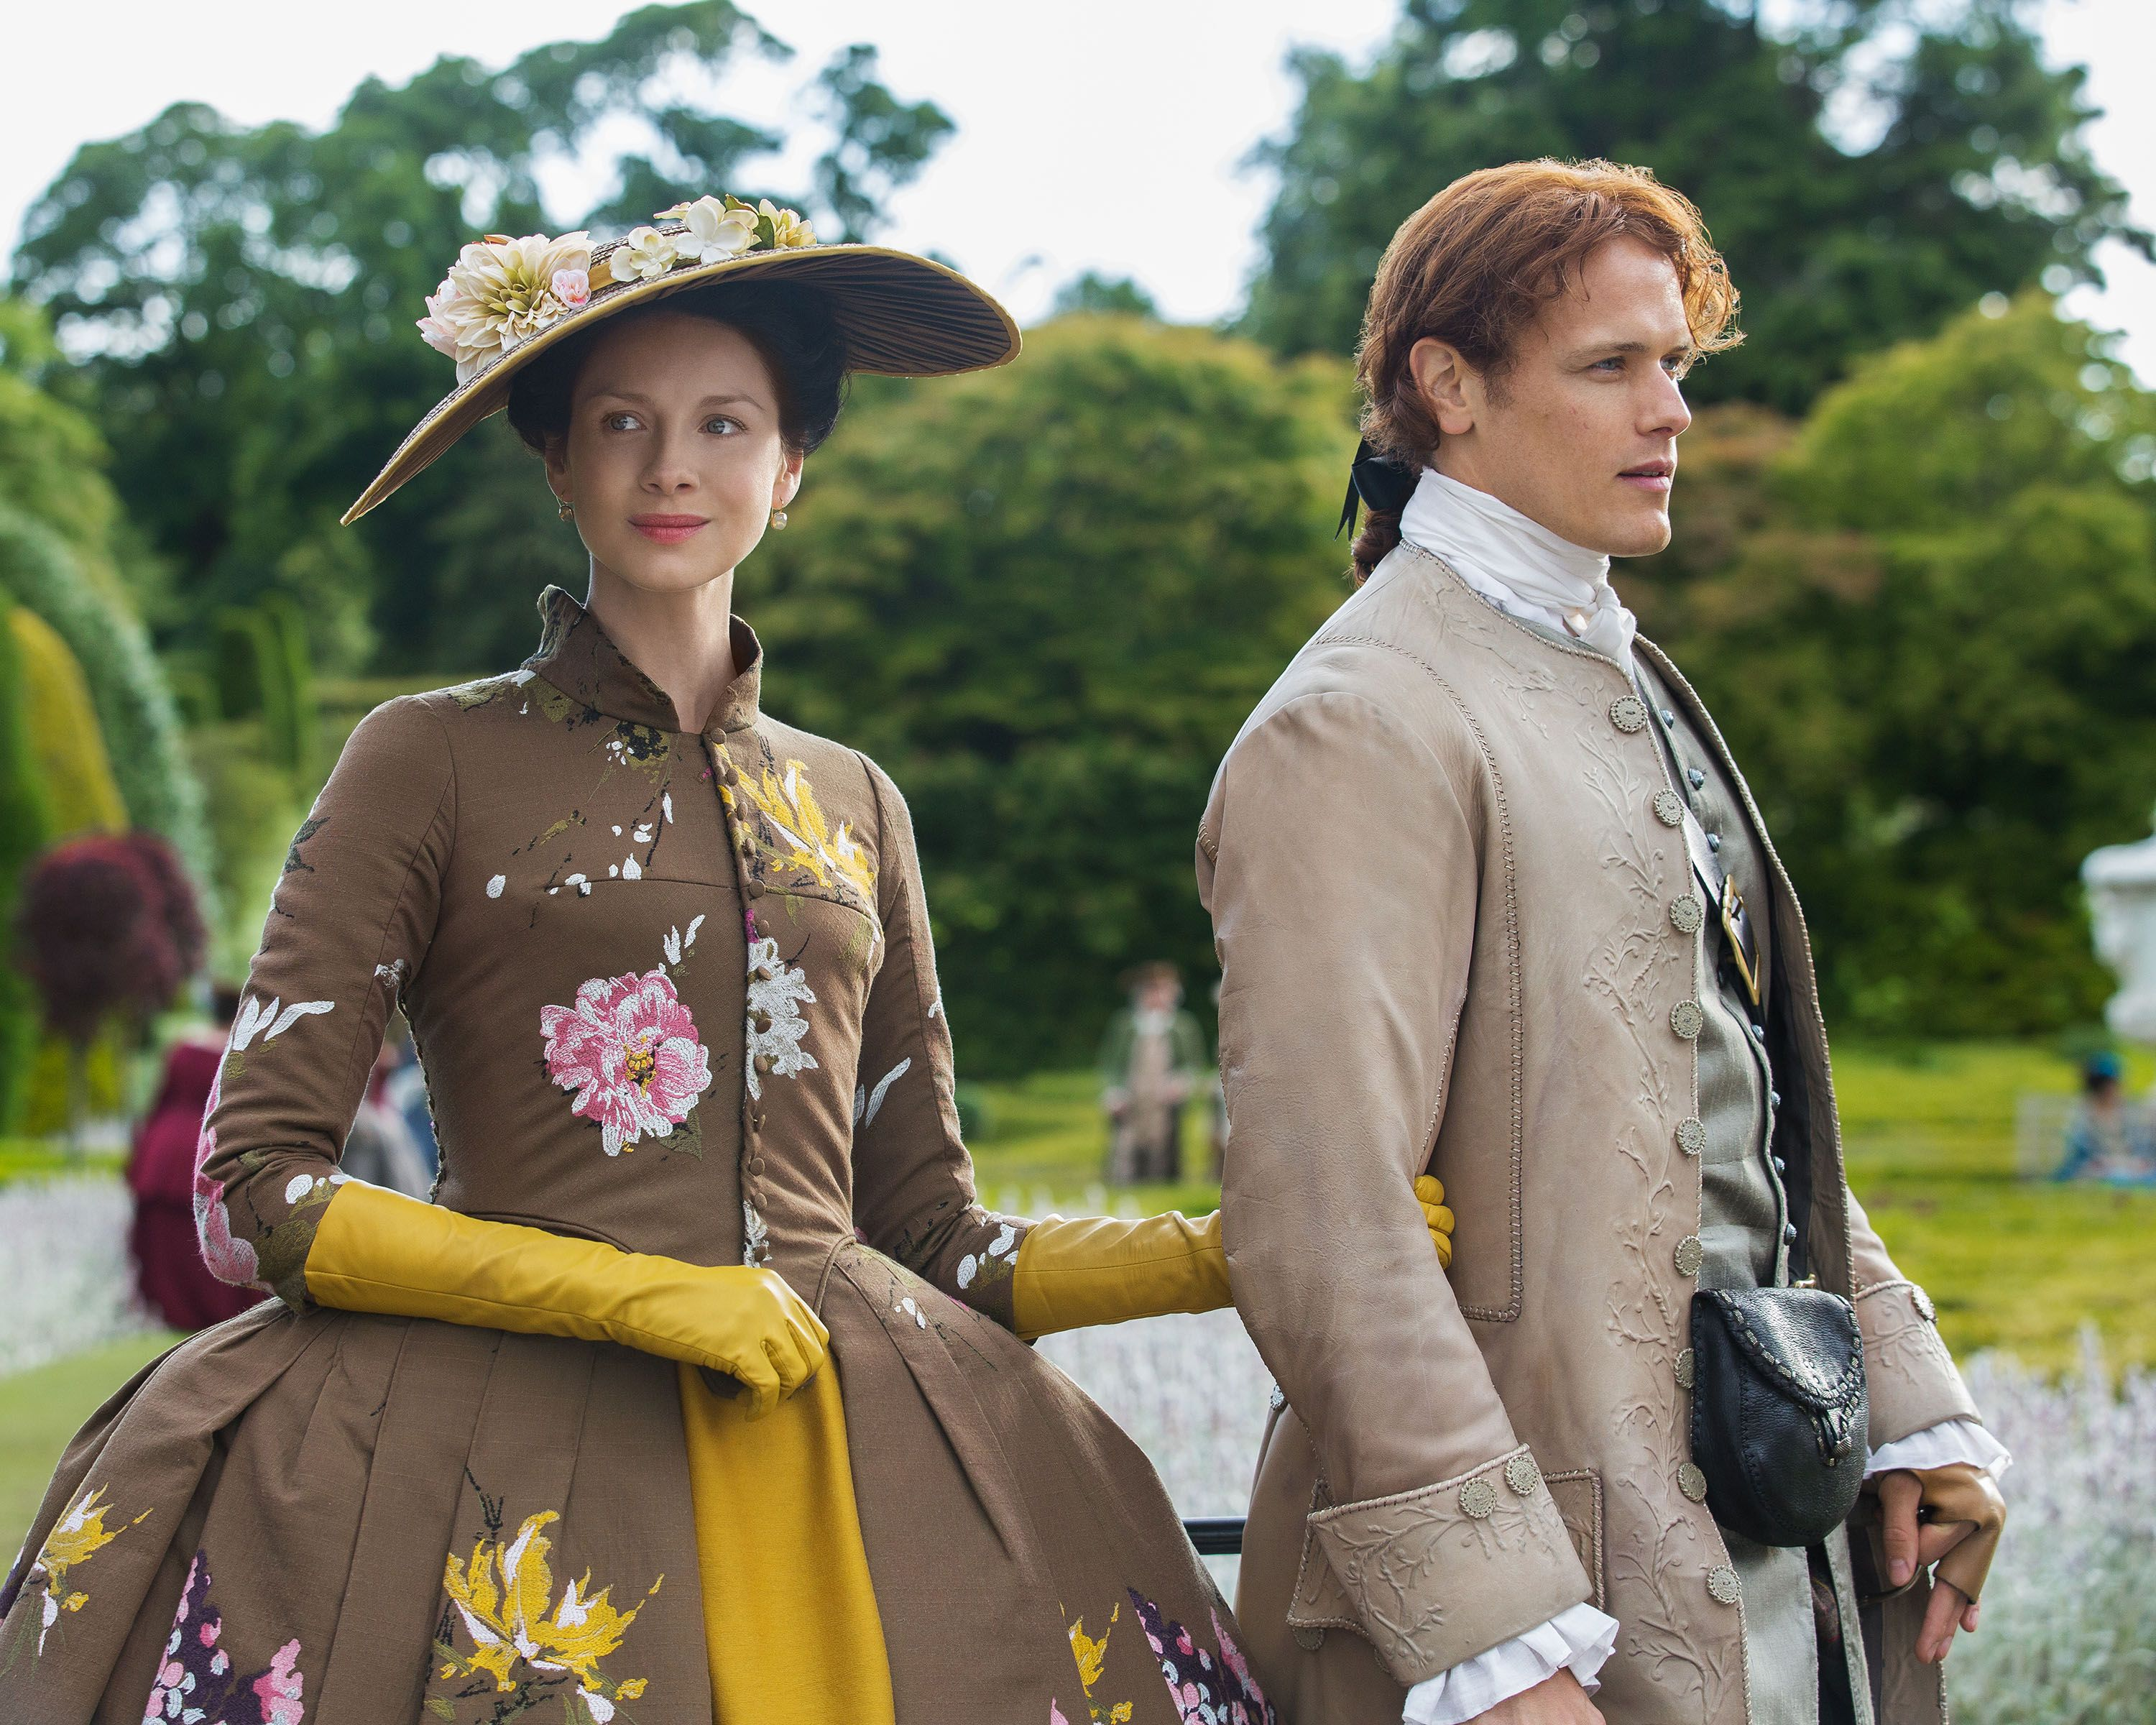 When Caitriona Balfe signed up to play Claire Randall in Outlander three years ago, she was asked if, by the way, she was prepared to have her l...